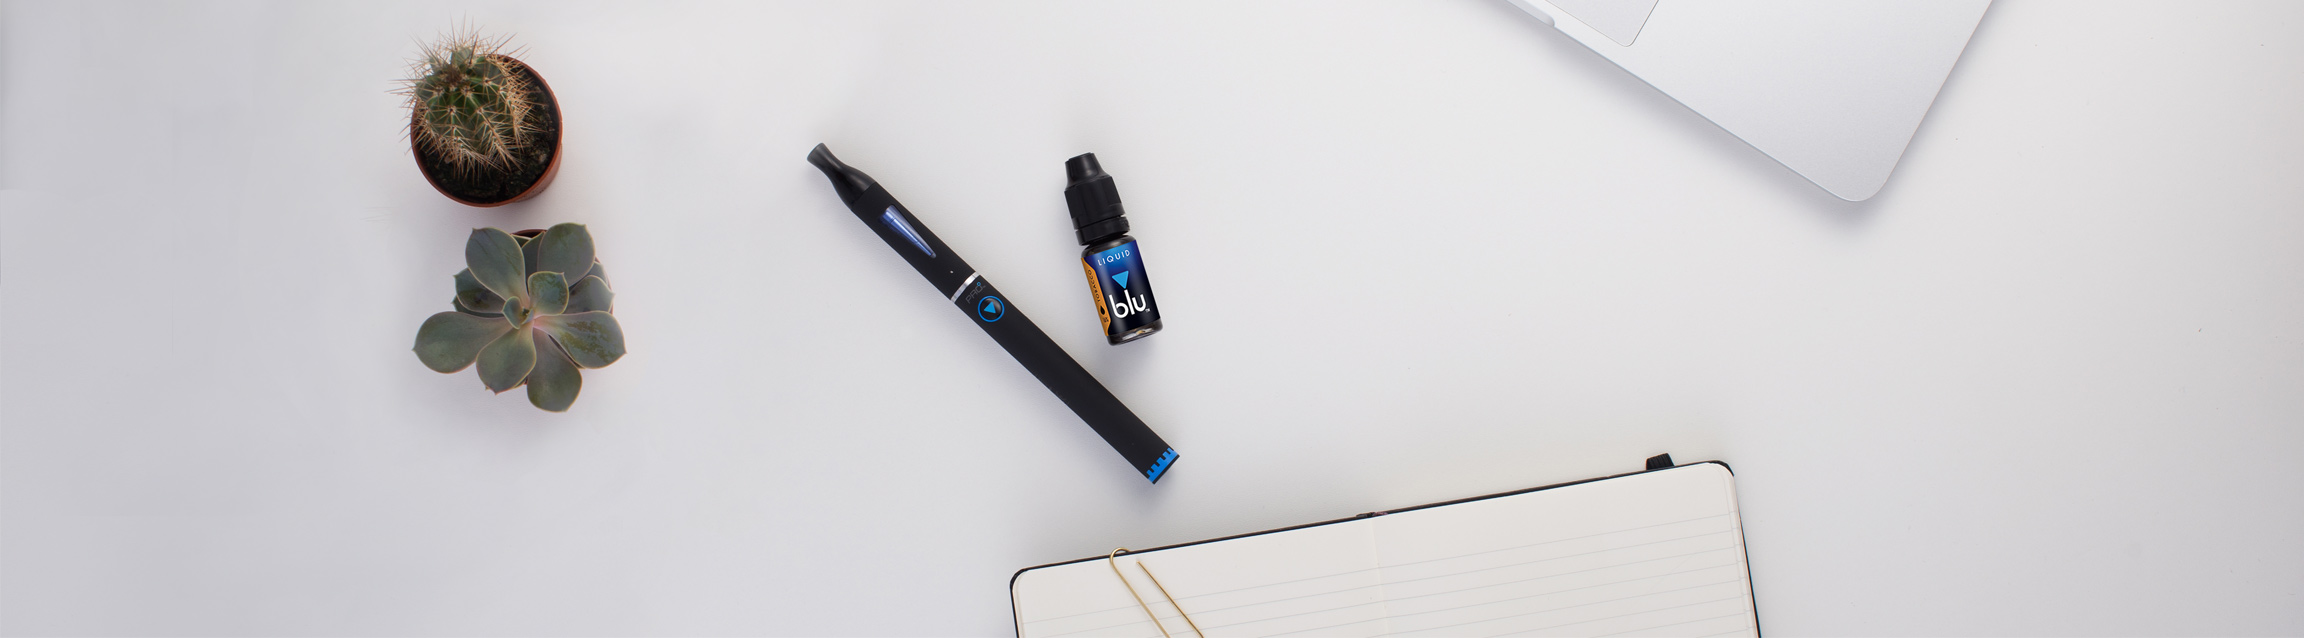 Blu Pro e-cigarette and e-liquids